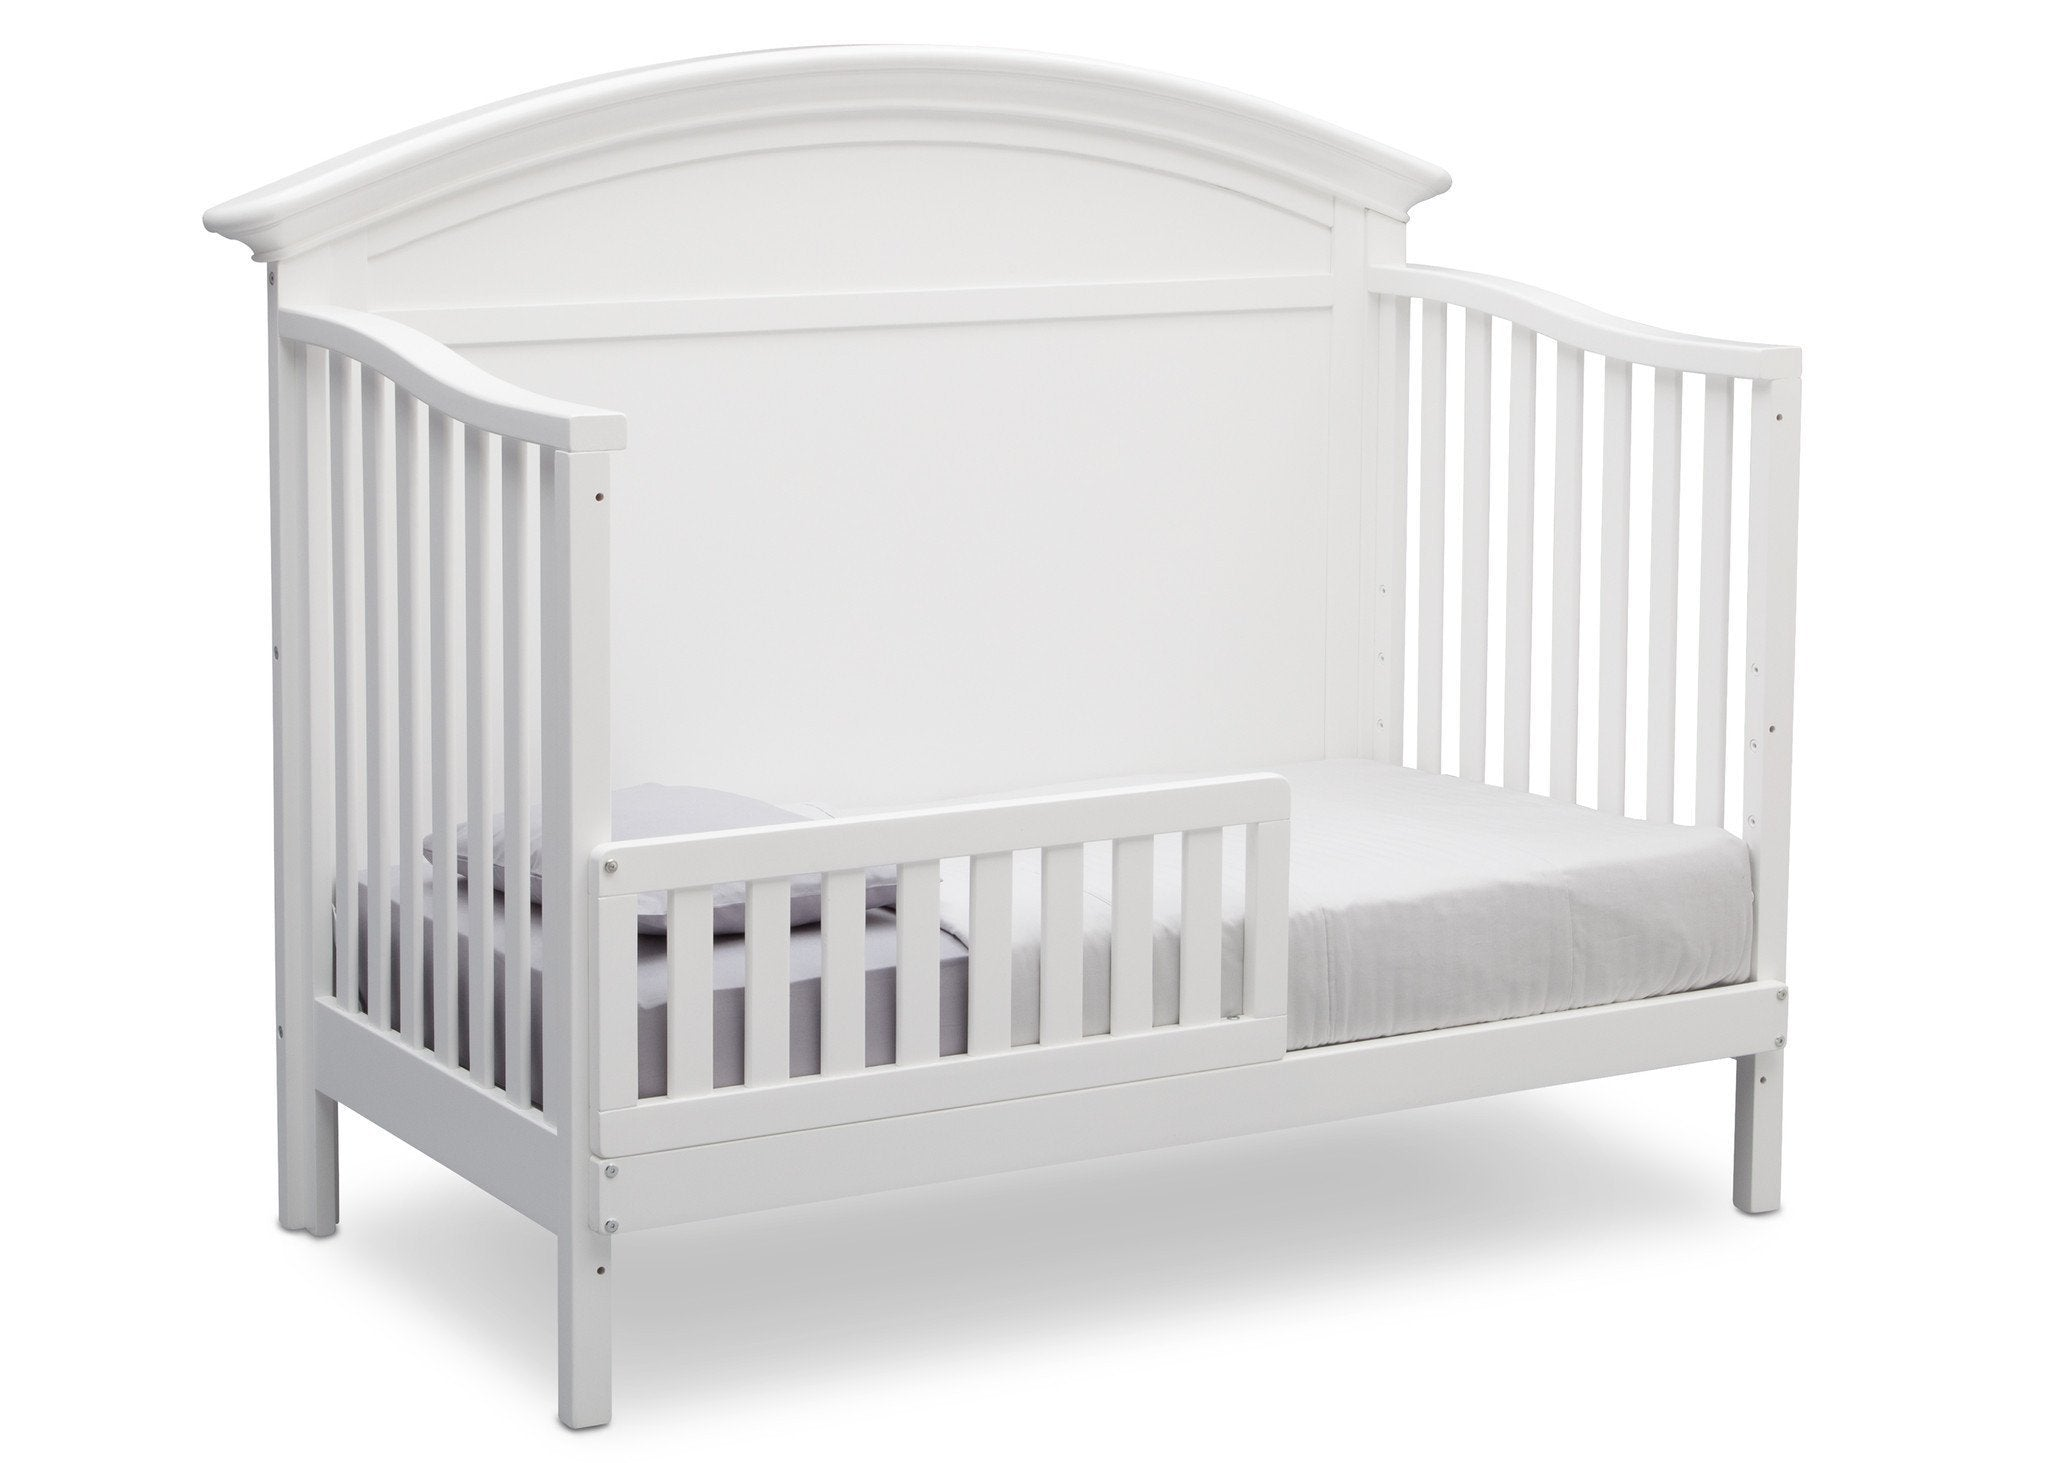 Serta Bianca (130) Adelaide 4-in-1 Crib, Side View with Toddler Bed Conversion b5b